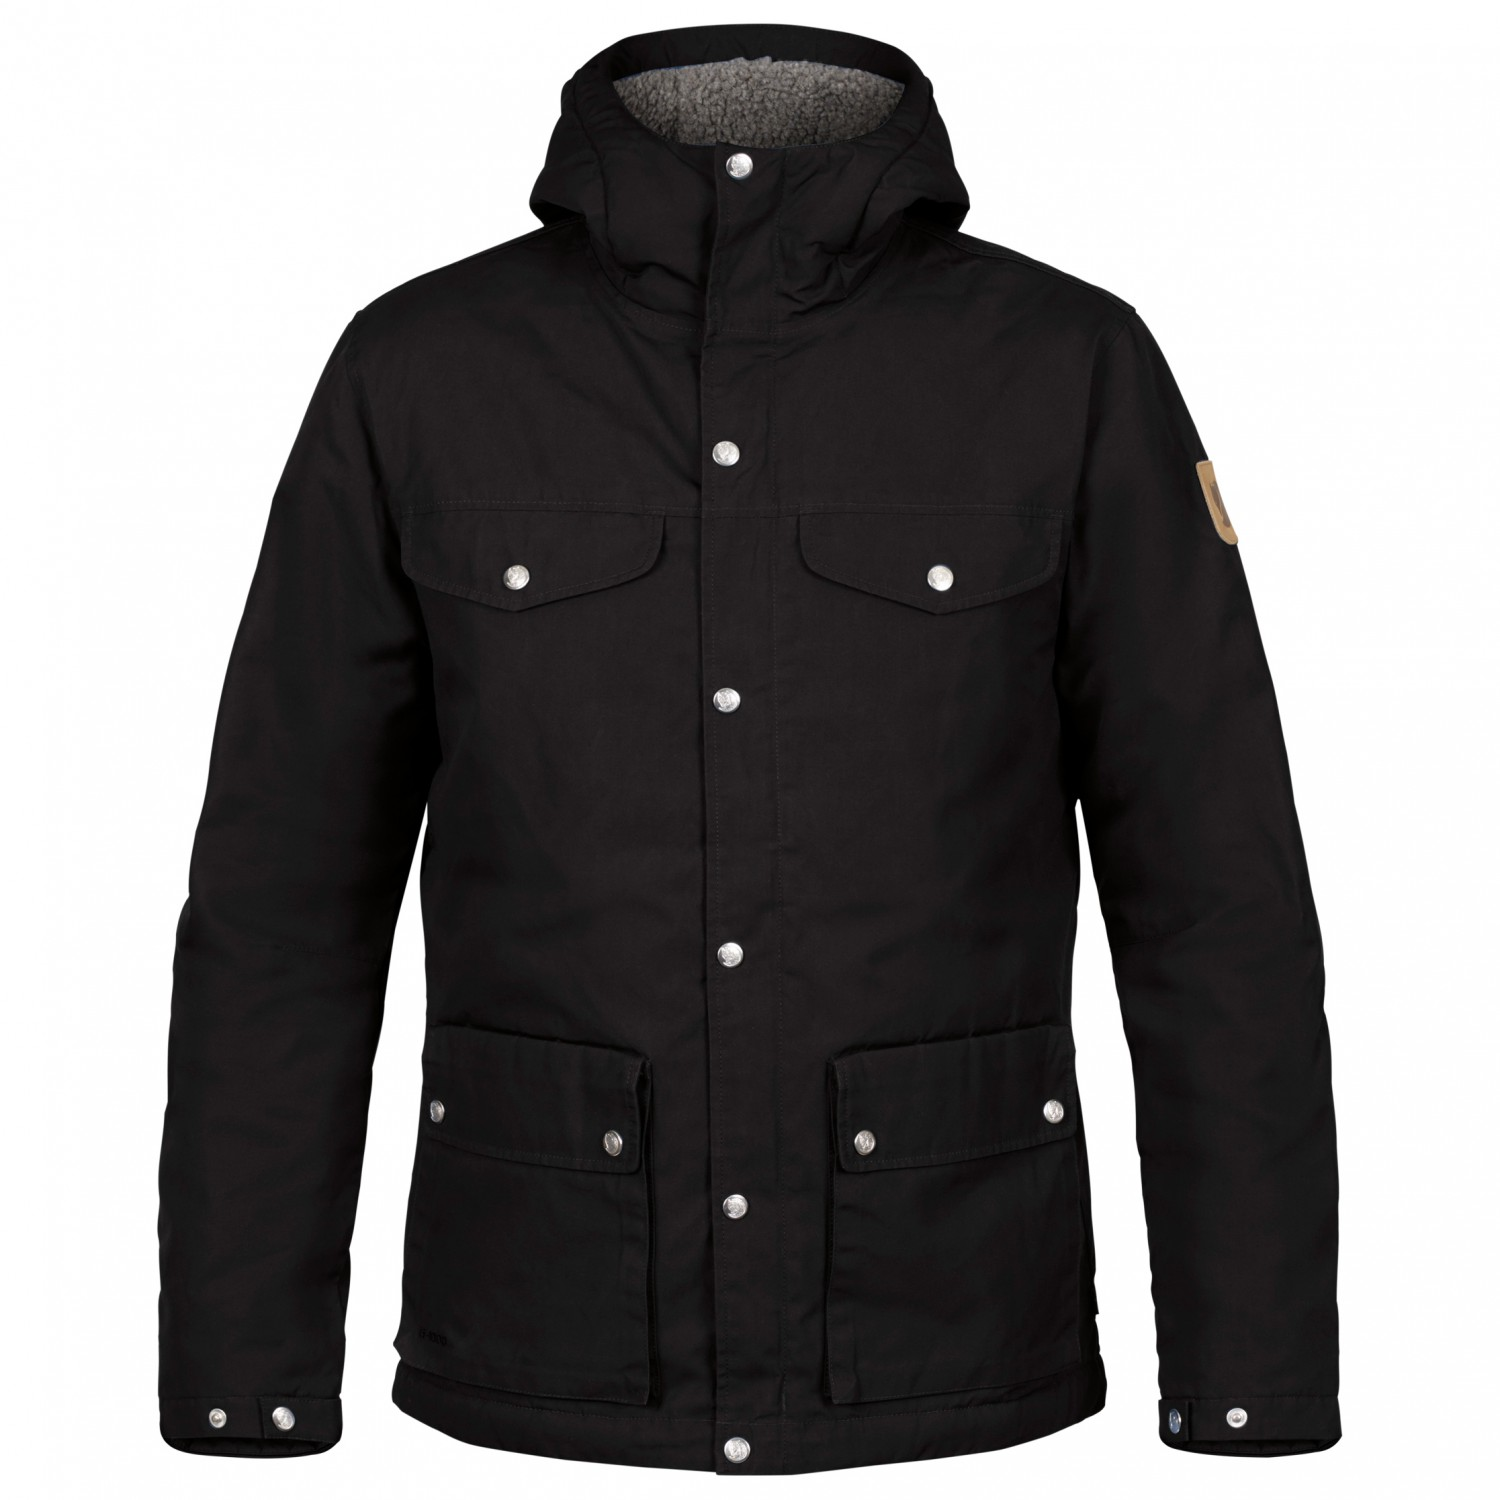 Fjällräven Greenland Winter Jacket Winterjacke Herren